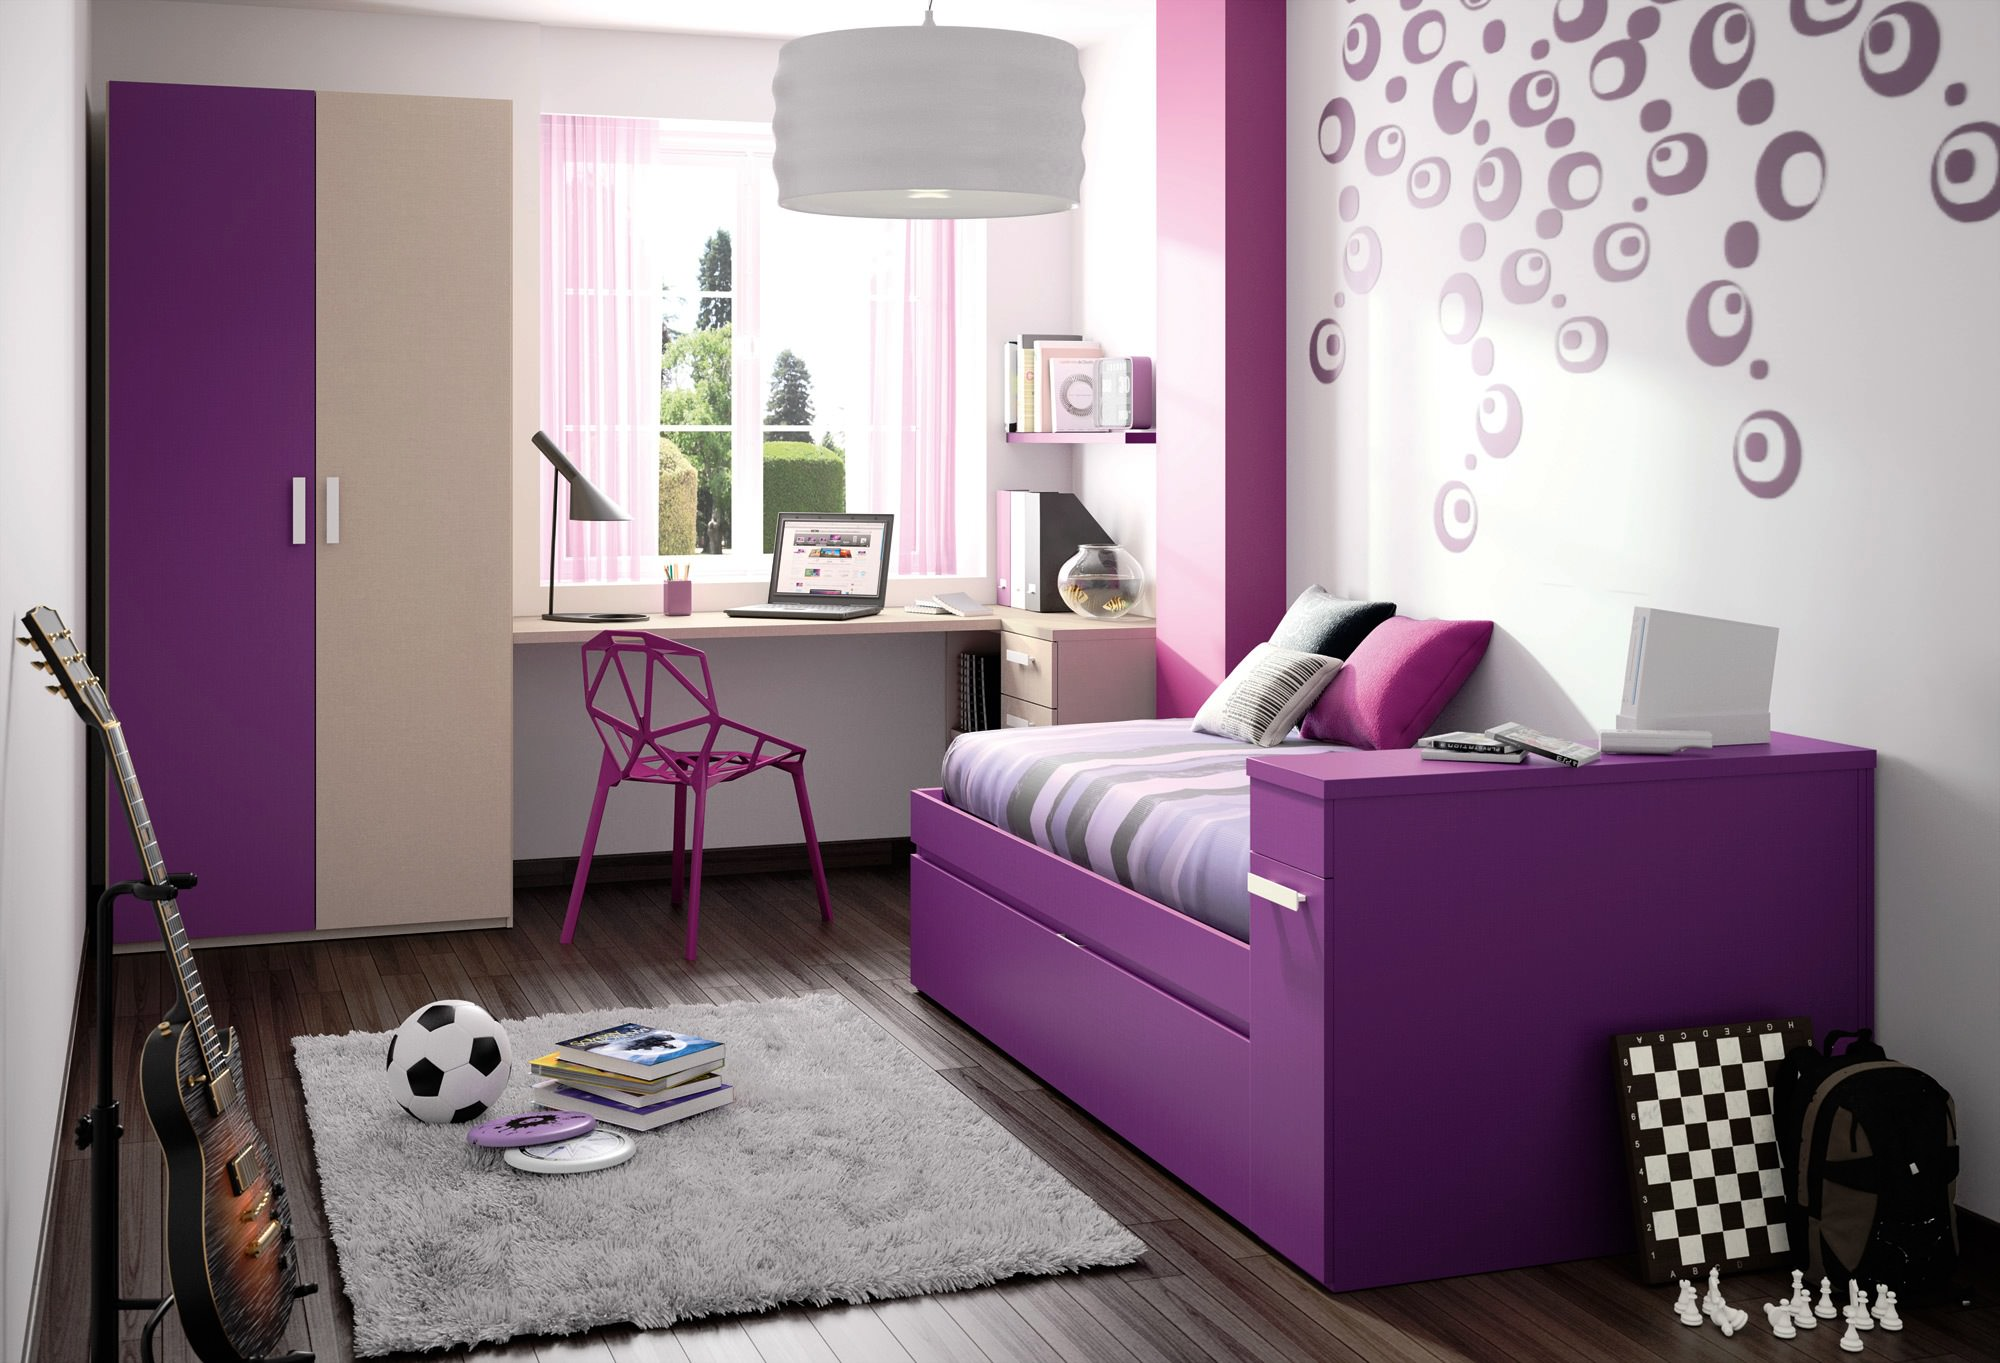 small wall design for teenage bedroom - Simple Shapes Wall Design